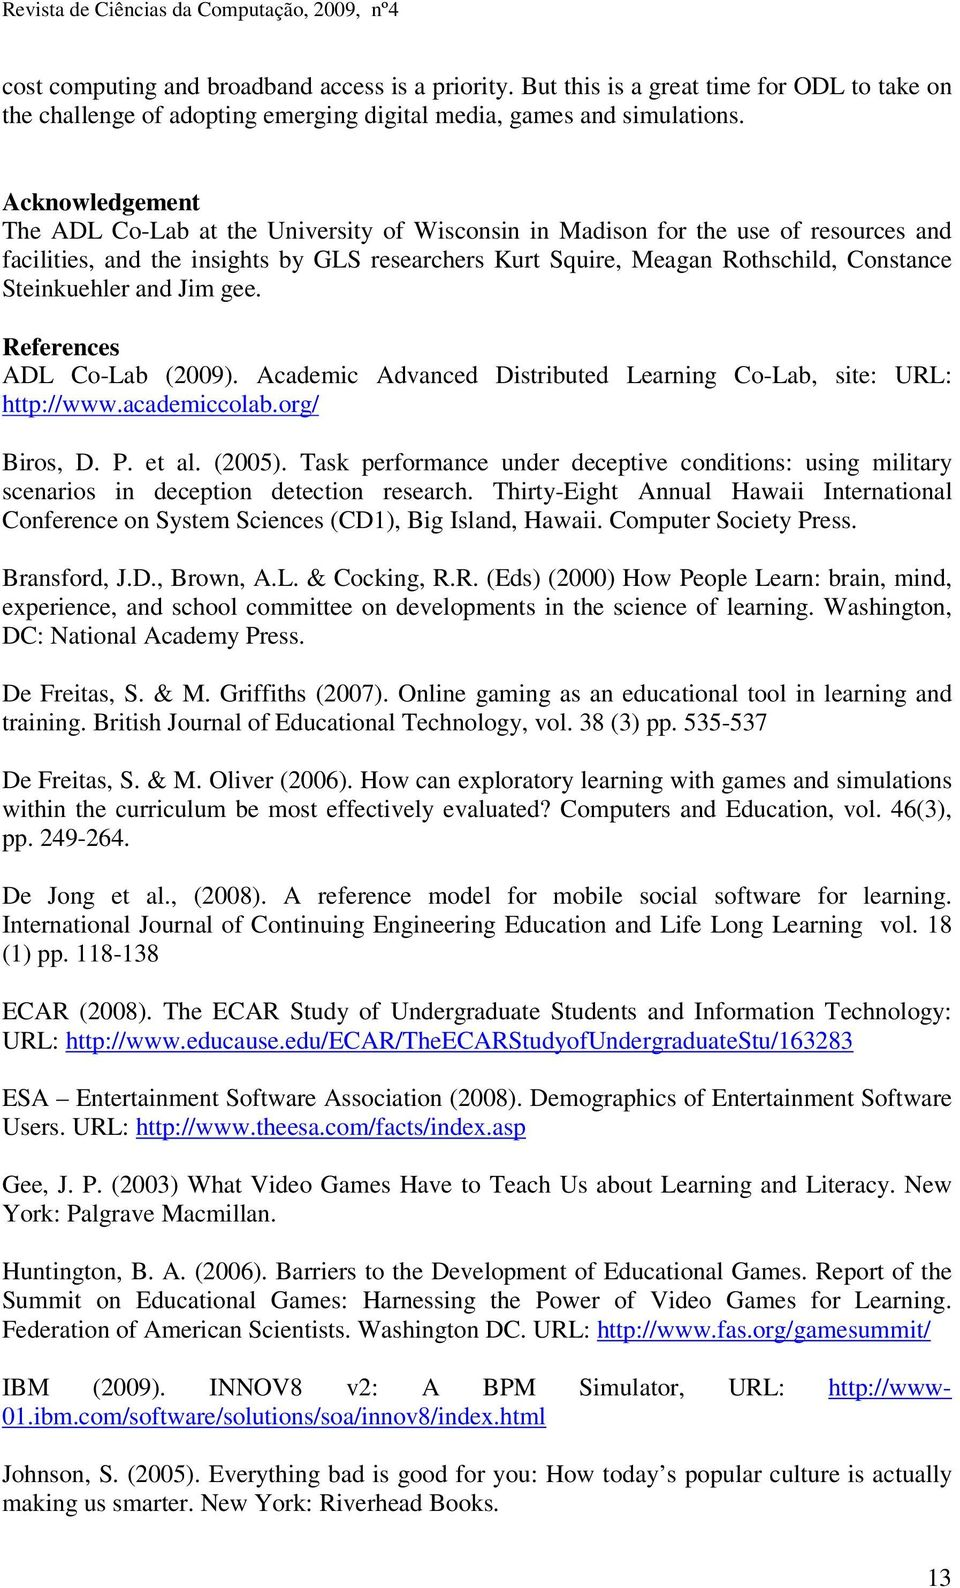 Steinkuehler and Jim gee. References ADL Co-Lab (2009). Academic Advanced Distributed Learning Co-Lab, site: URL: http://www.academiccolab.org/ Biros, D. P. et al. (2005).